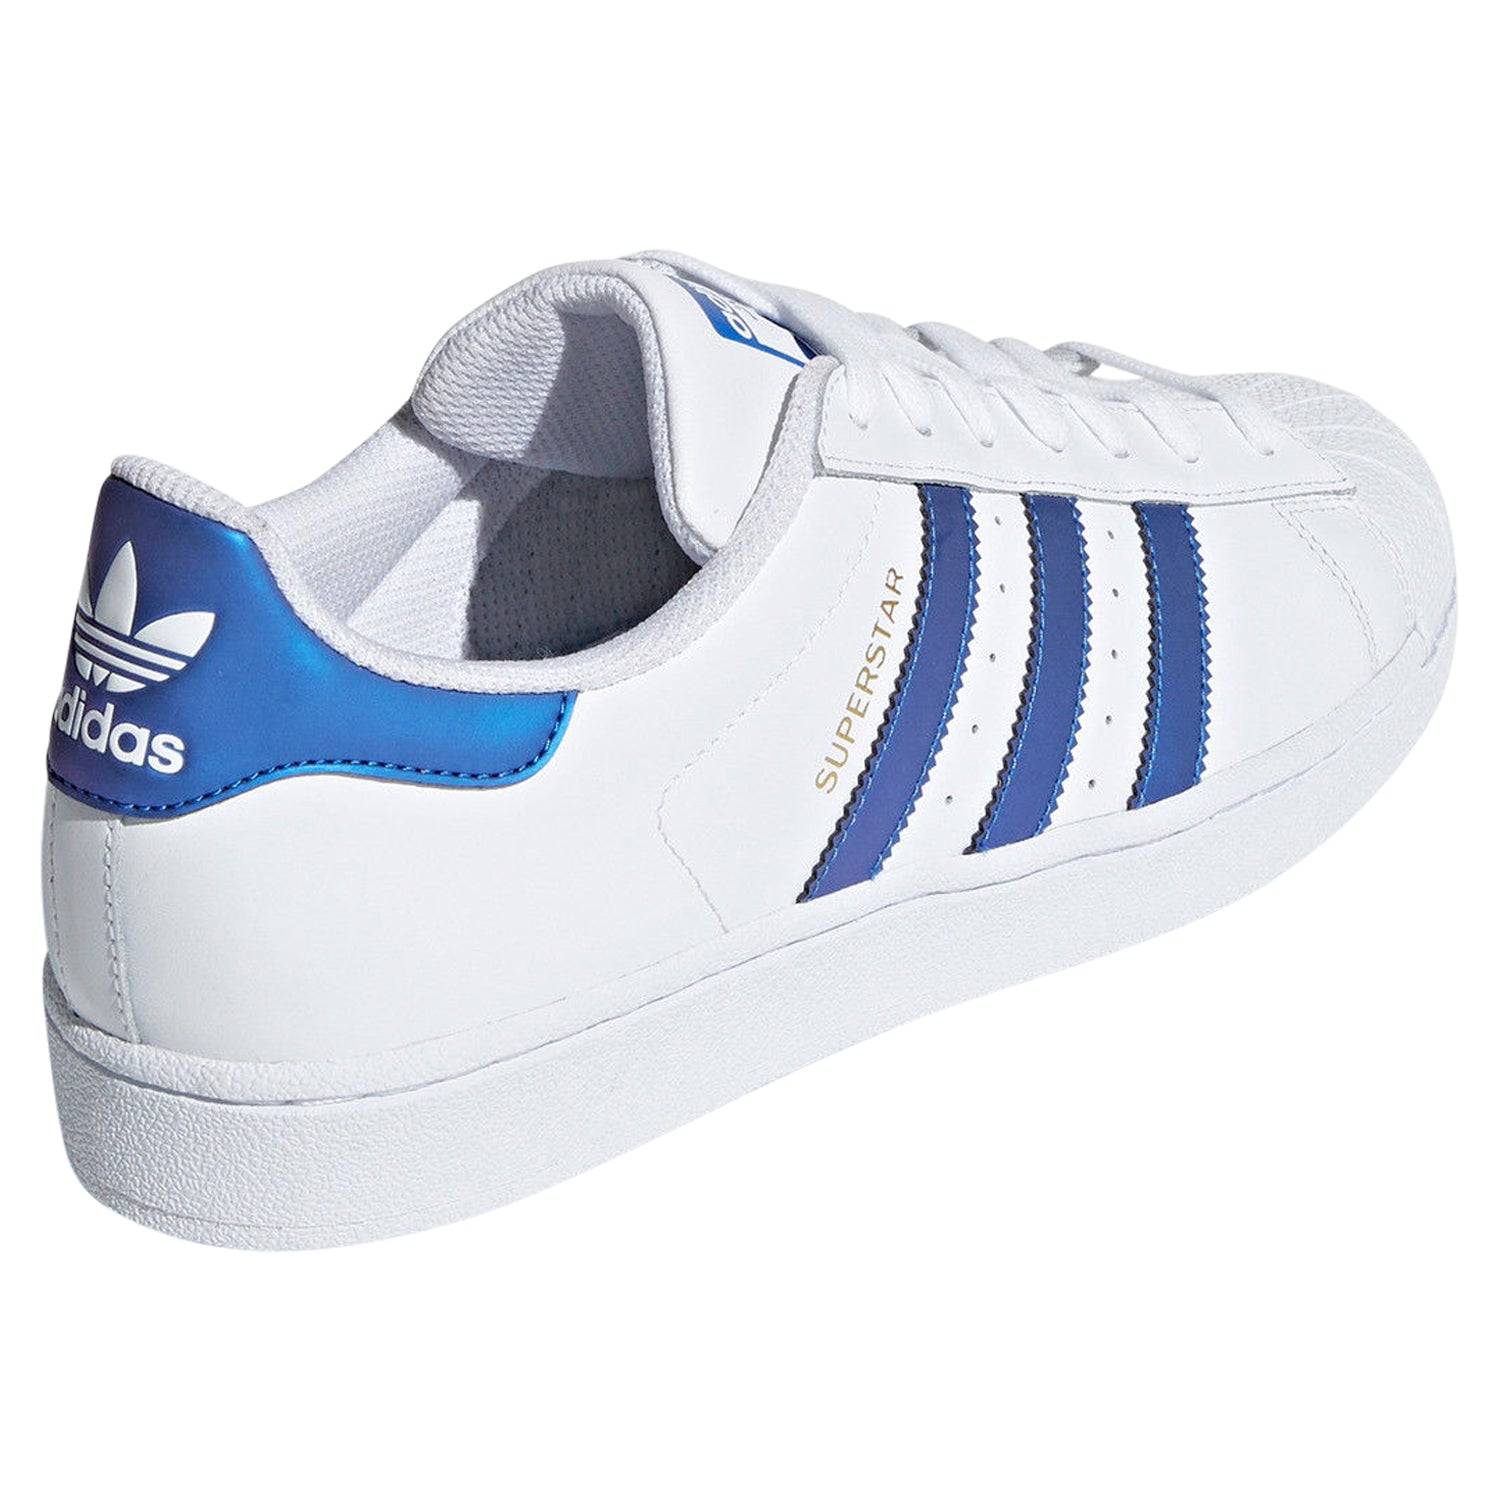 Men's adidas Originals trainers • adidas® | Shop men's